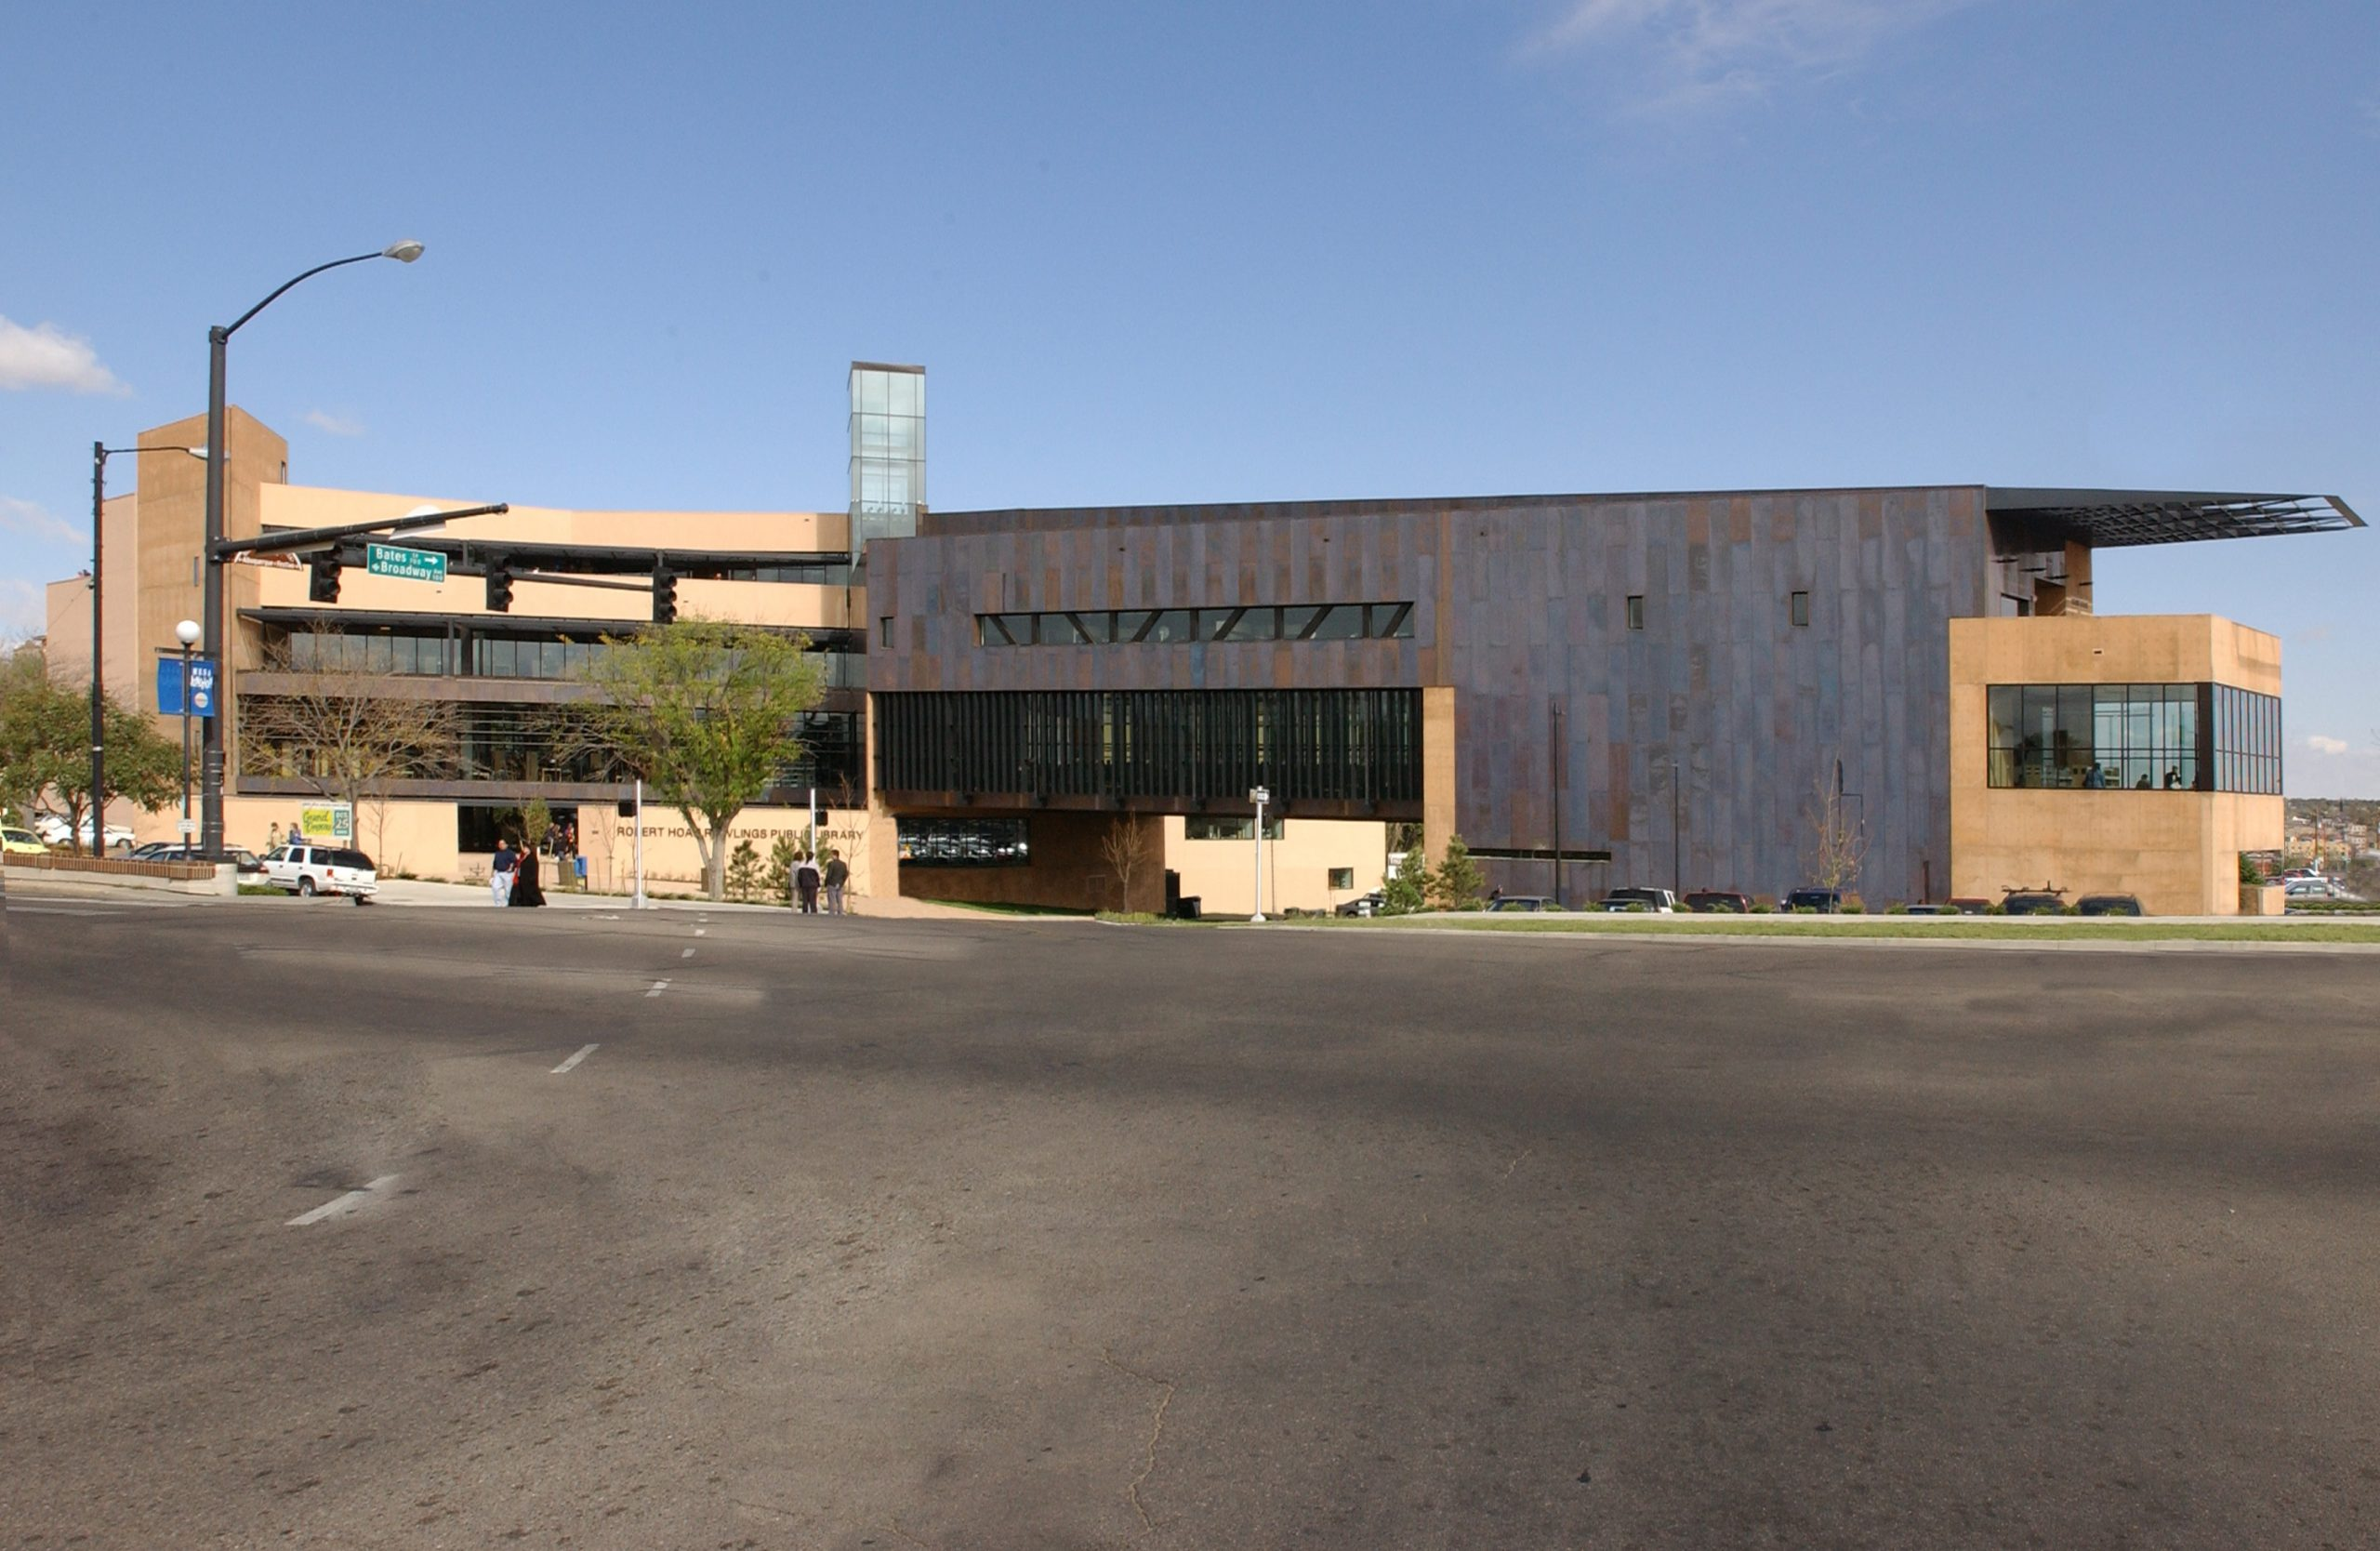 The Rawlings Library is the main branch of the Pueblo City-County Library.